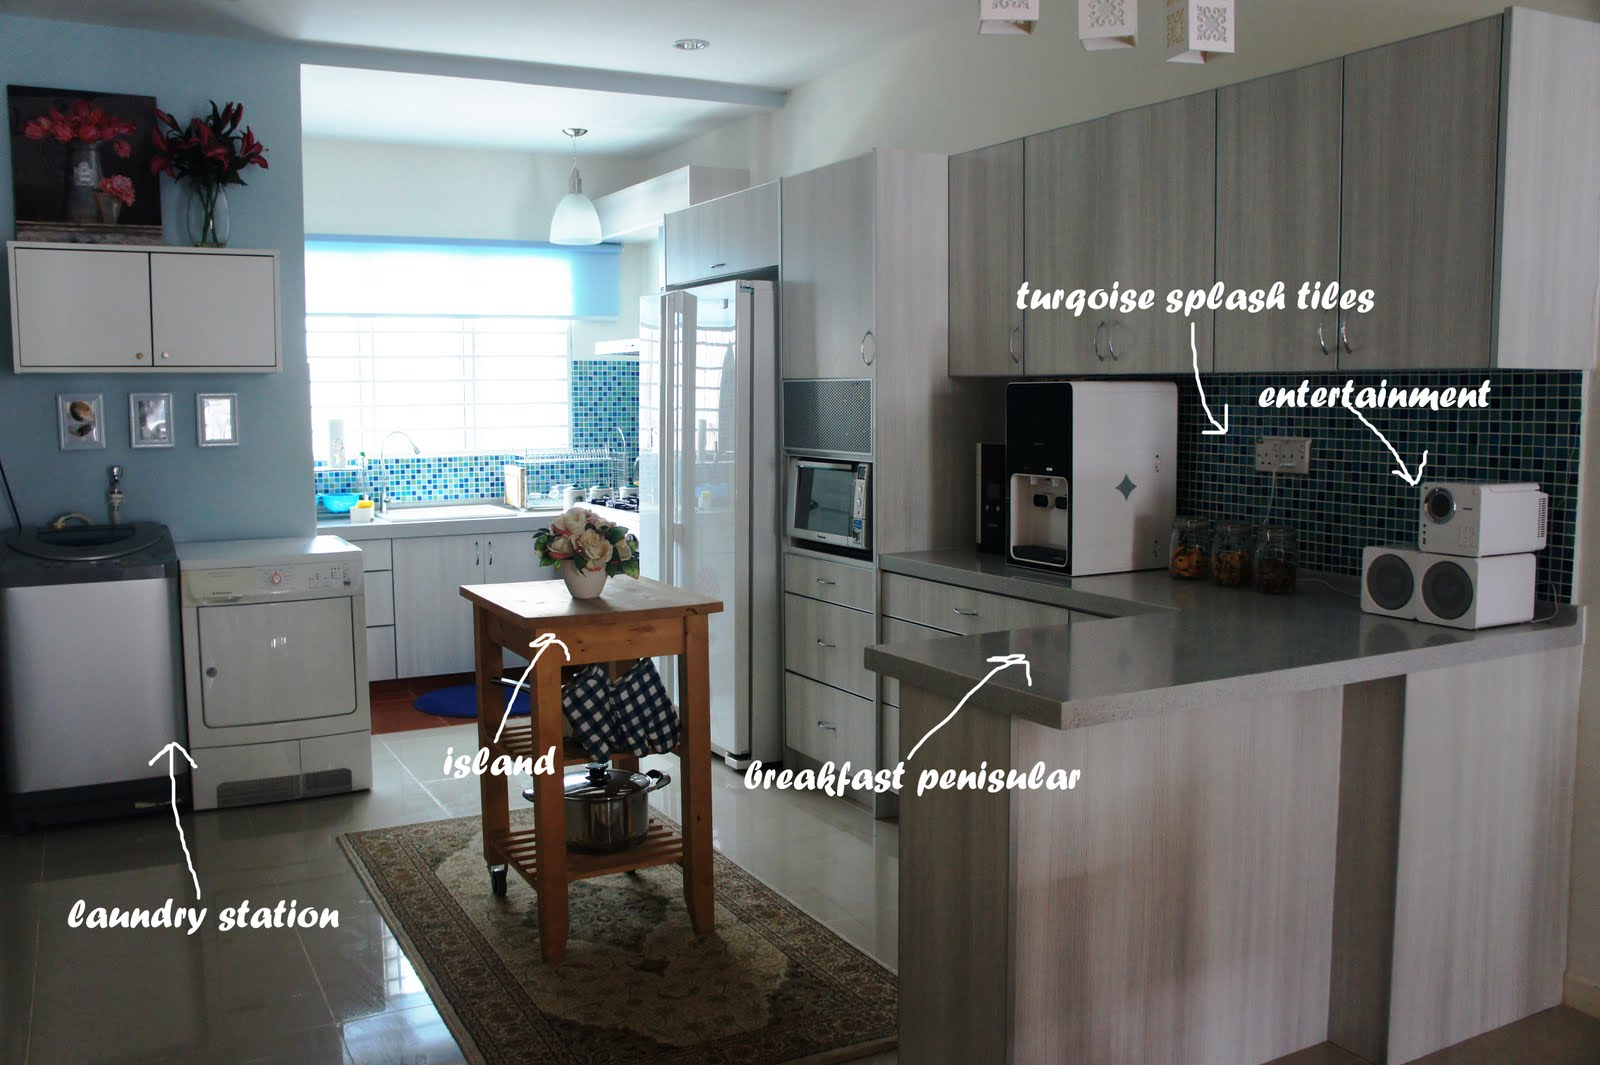 When I Came Back To Kl Decided Re Design The Kitchen And Improve Previous Layout Believe Know One Even My Mom Saw This Version Of